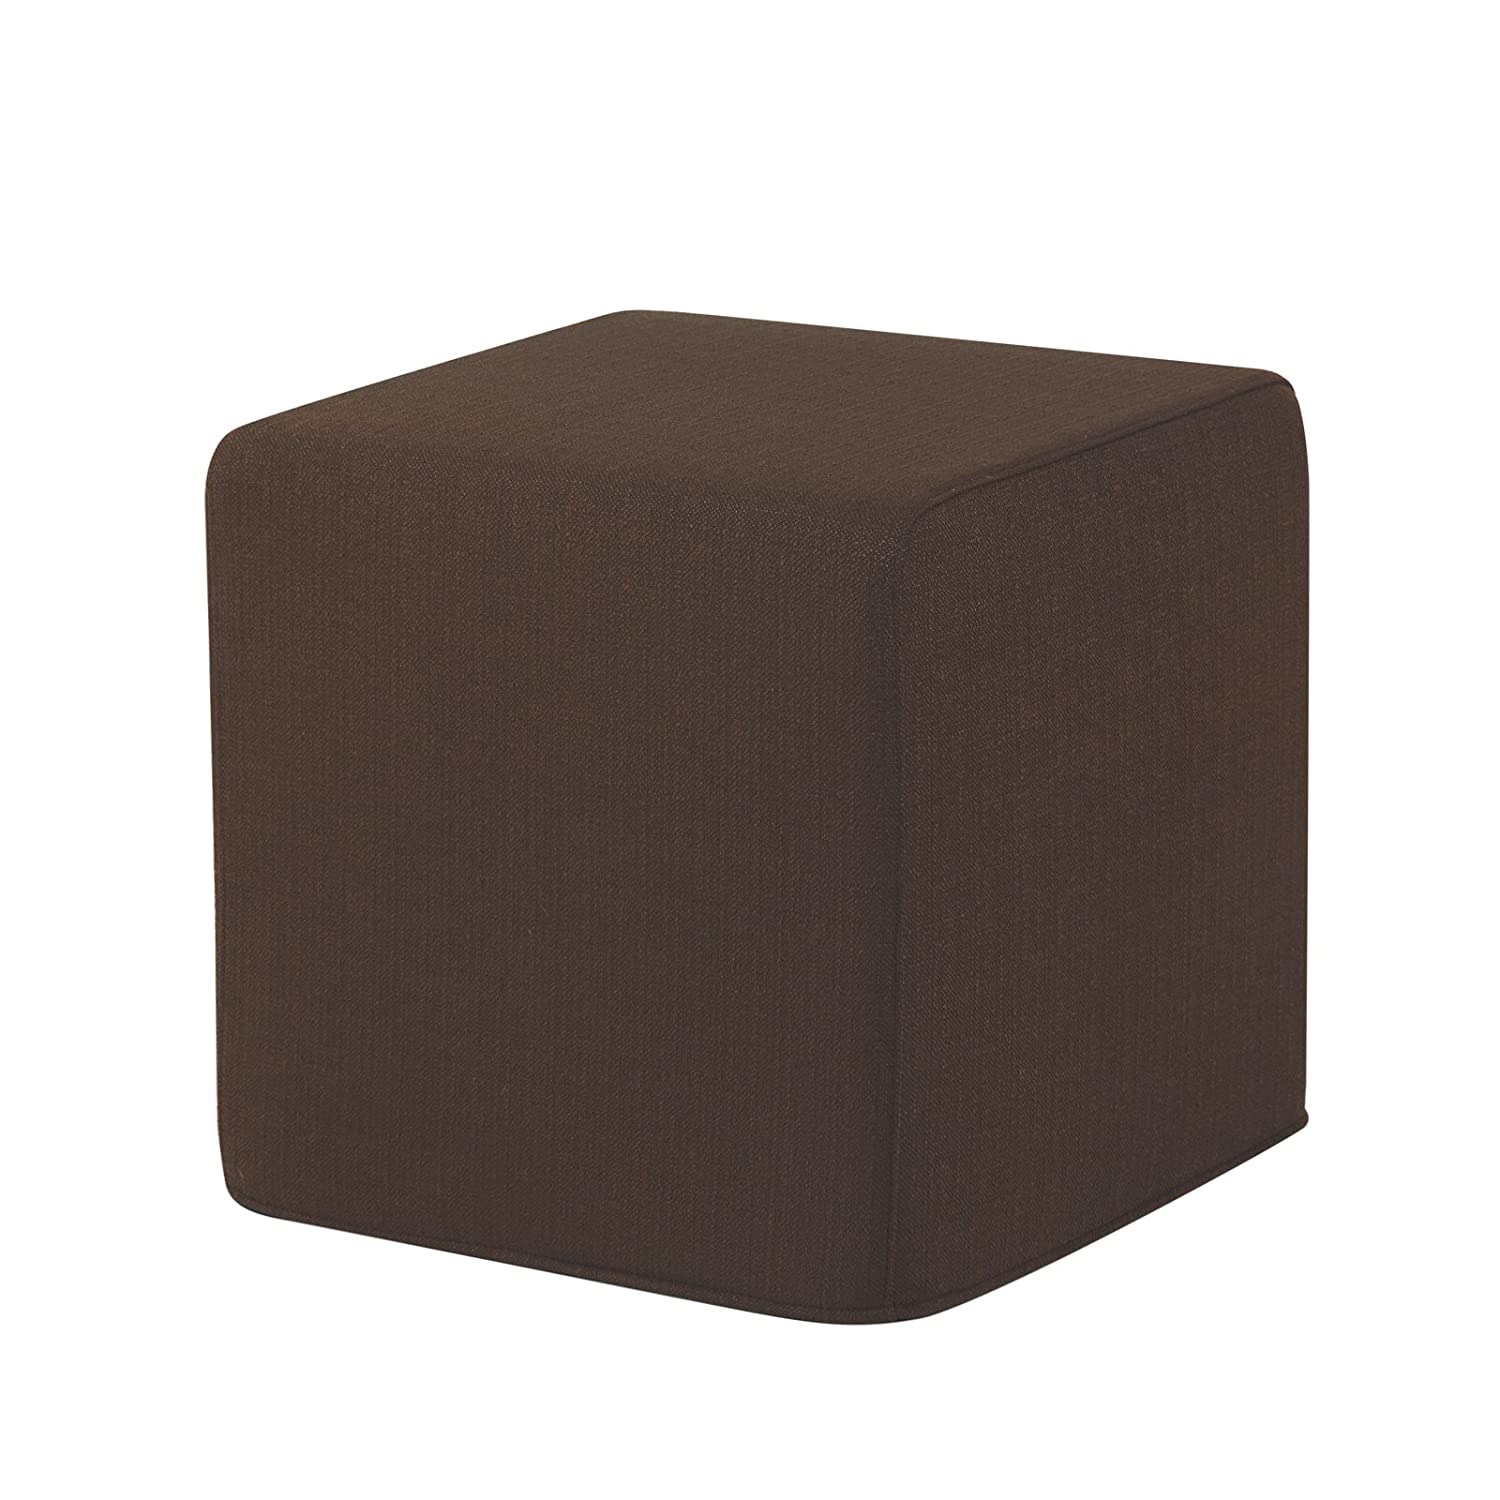 EXTROITALY Dado Pouf Puff POUFF Puff Ecopelle Beige Lavabile Mis. 40X40X40 Peso kg.4 CAB